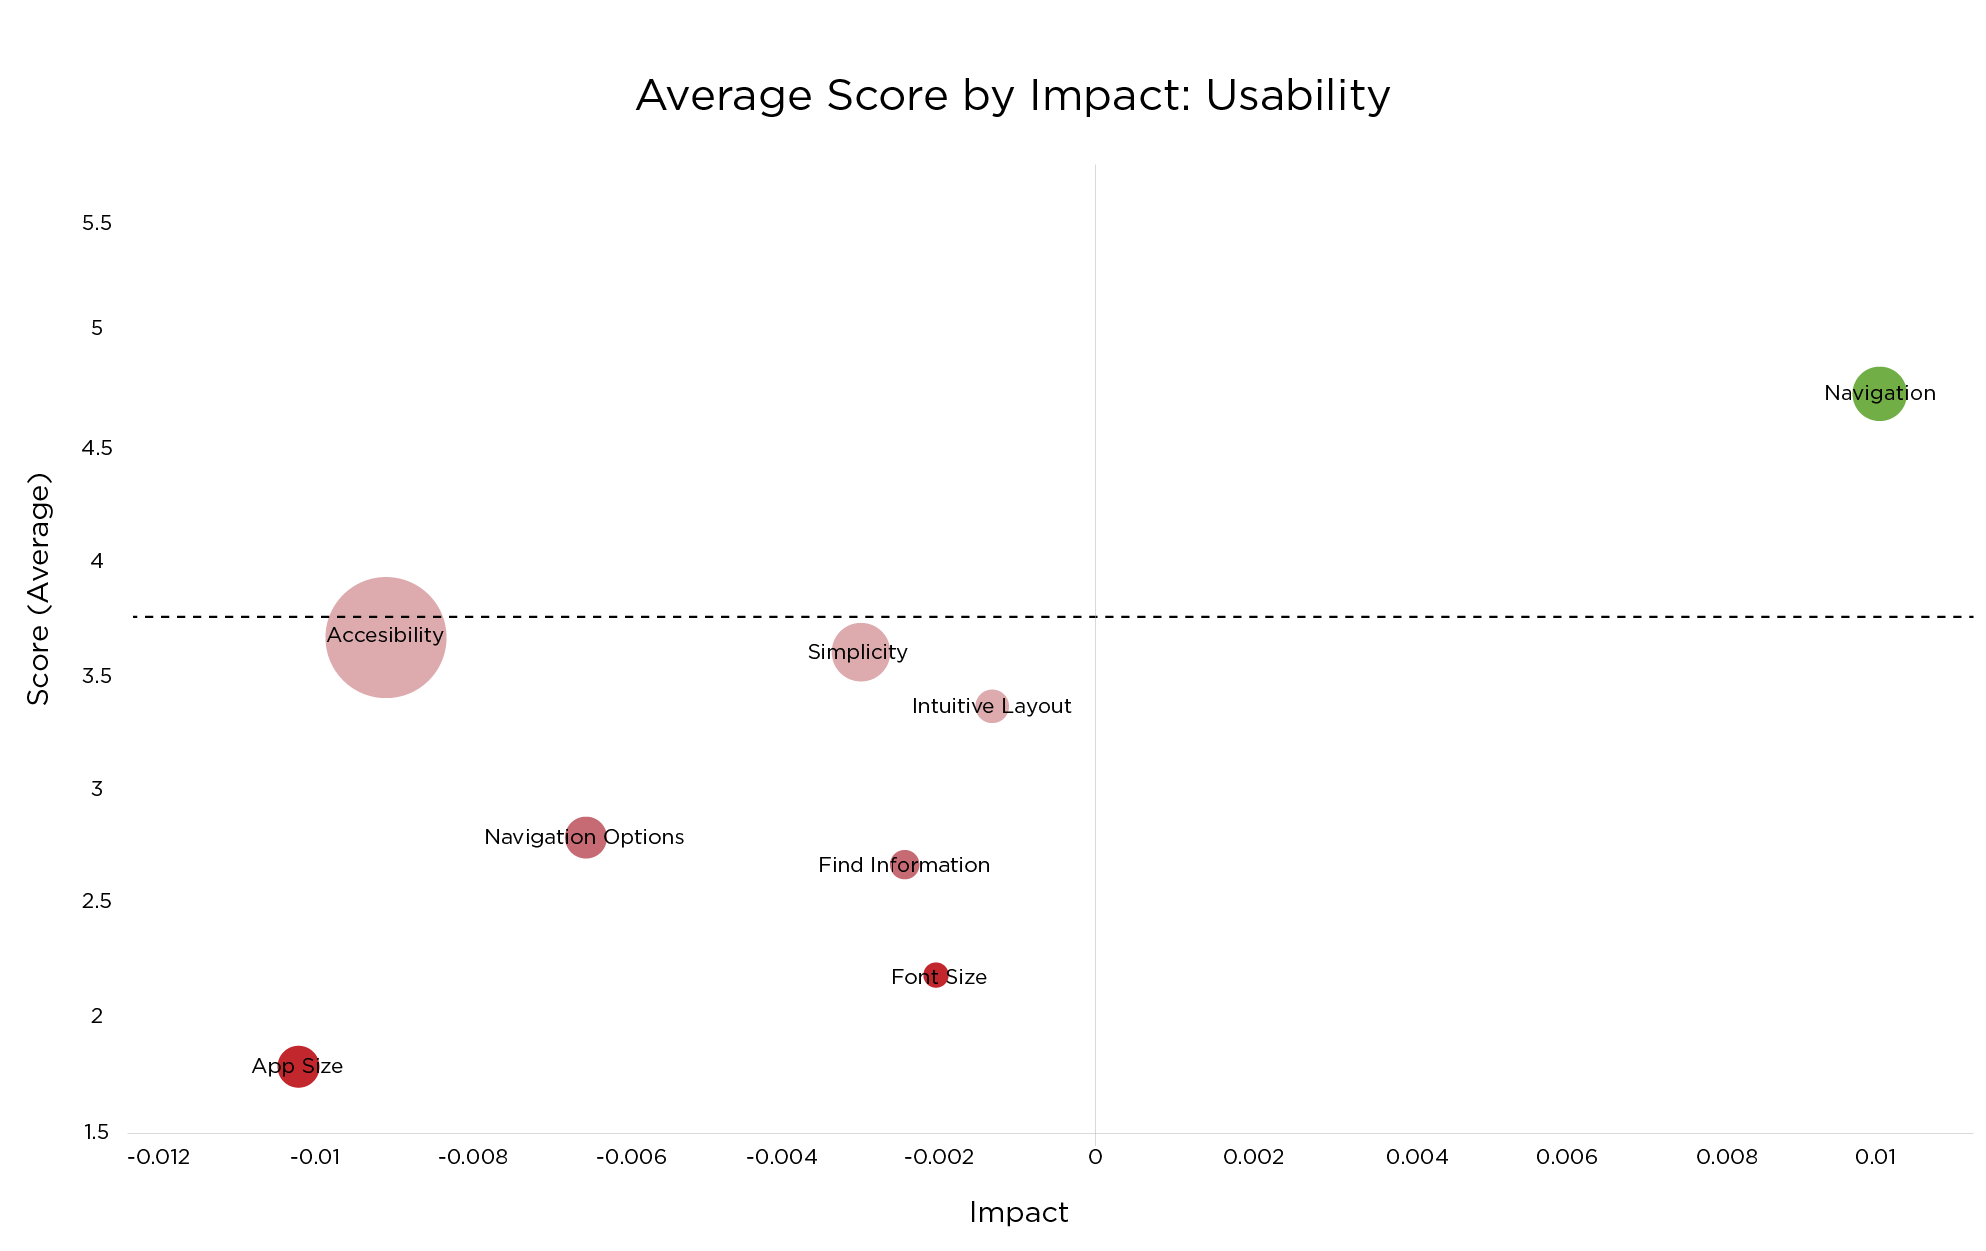 Impact of app usability issues